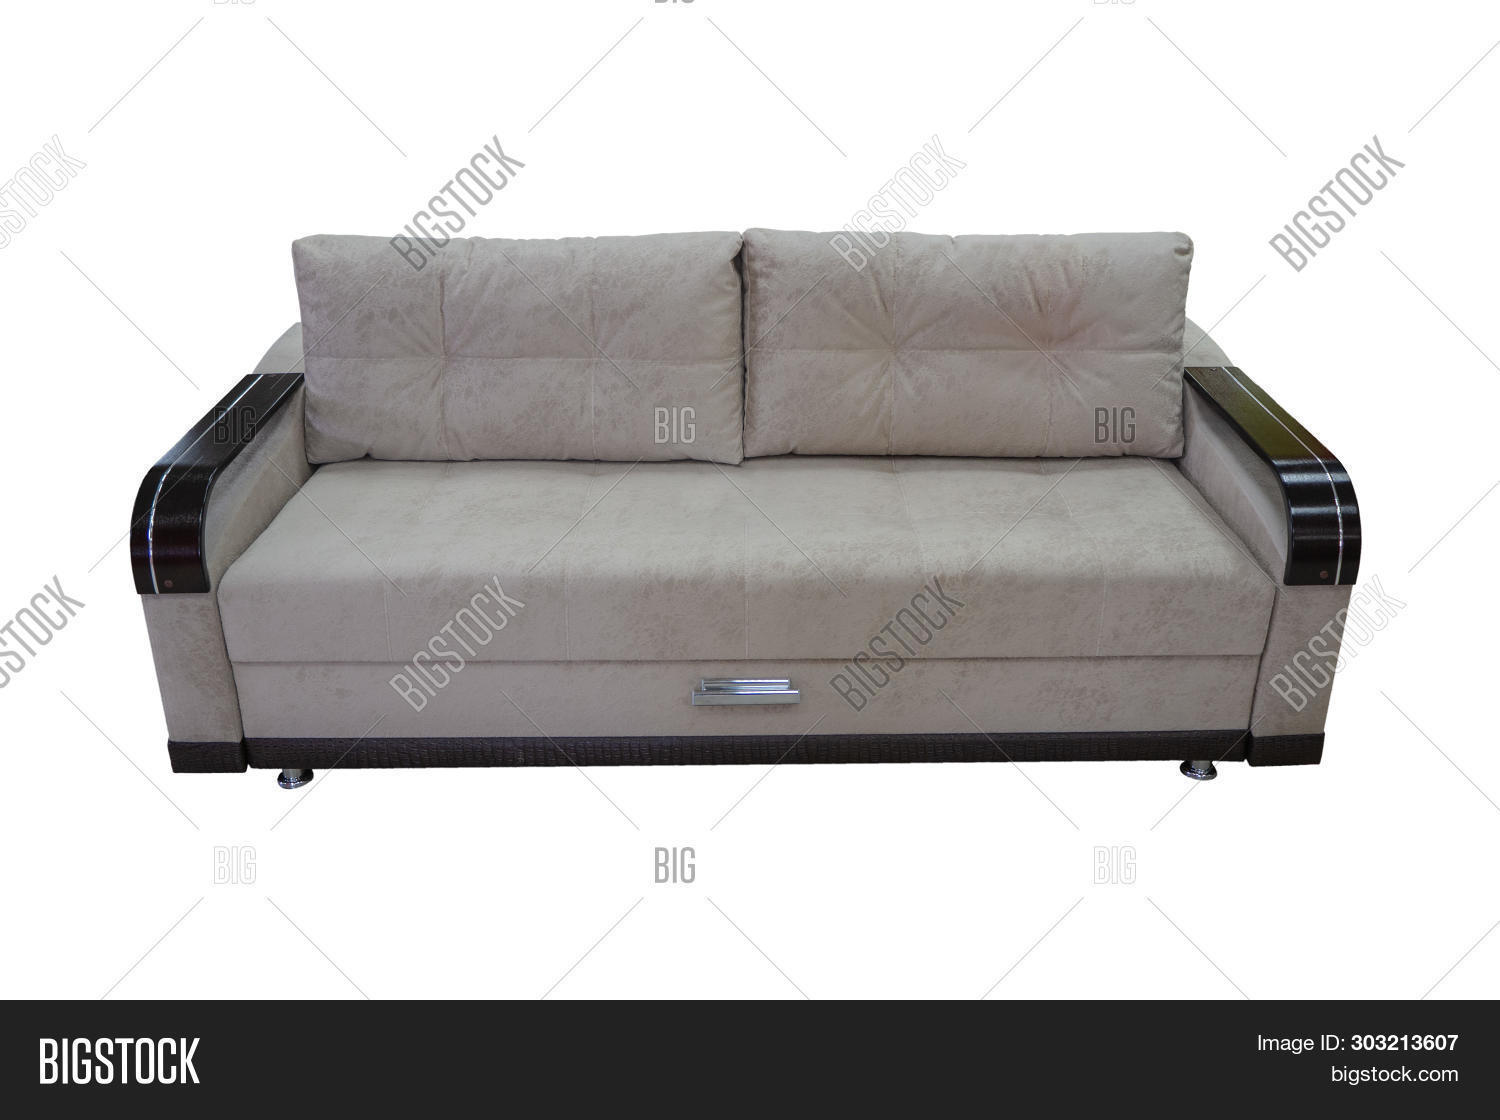 - Folding Sofa-bed Light Image & Photo (Free Trial) Bigstock